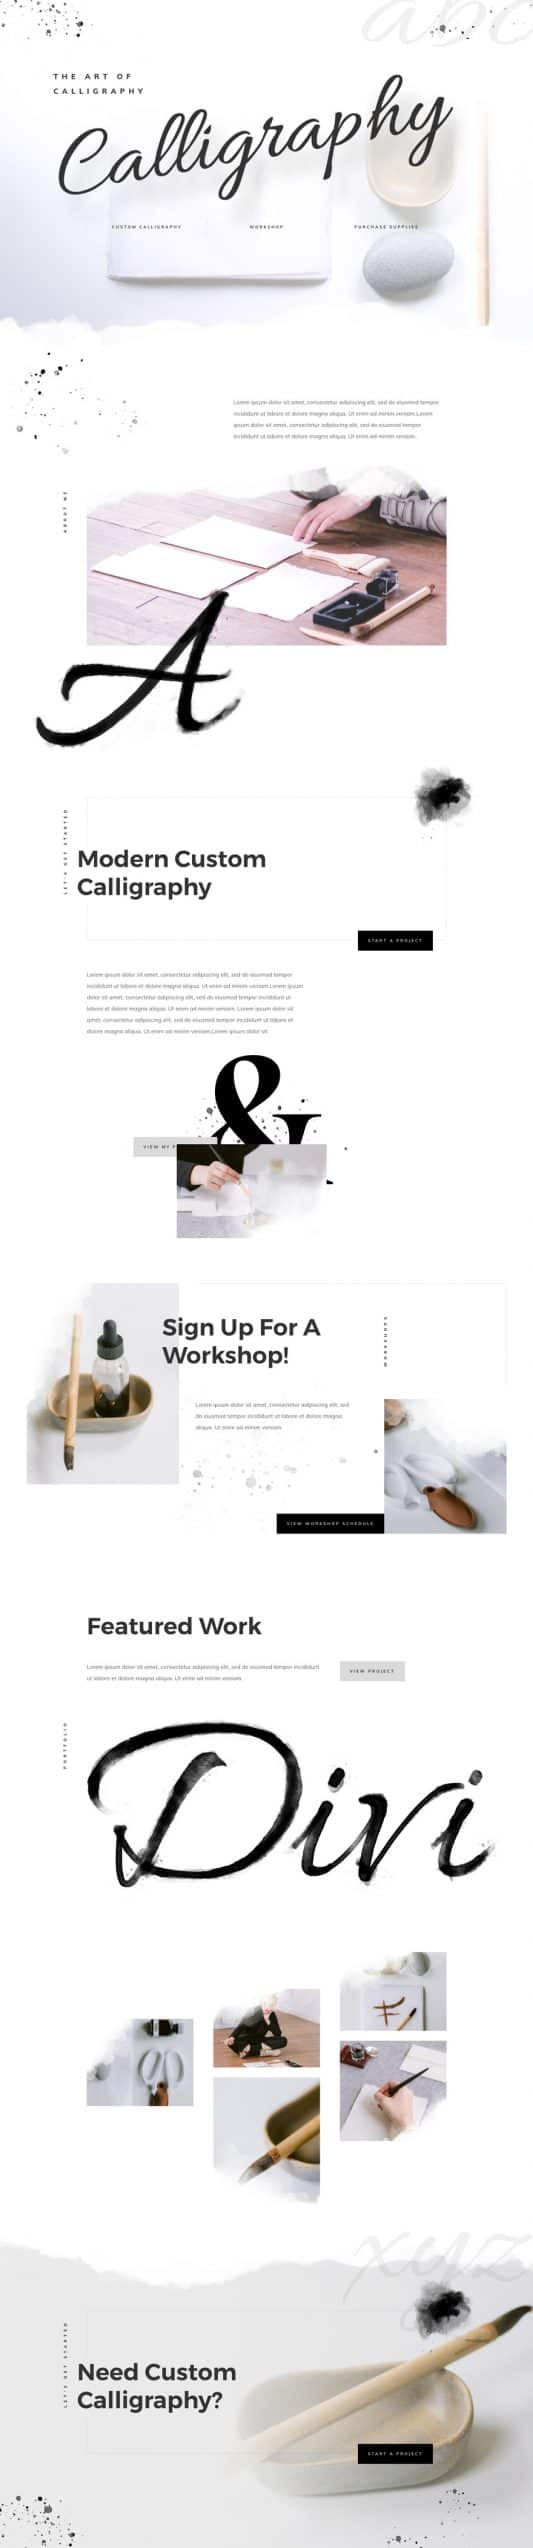 Calligrapher Web Design 4